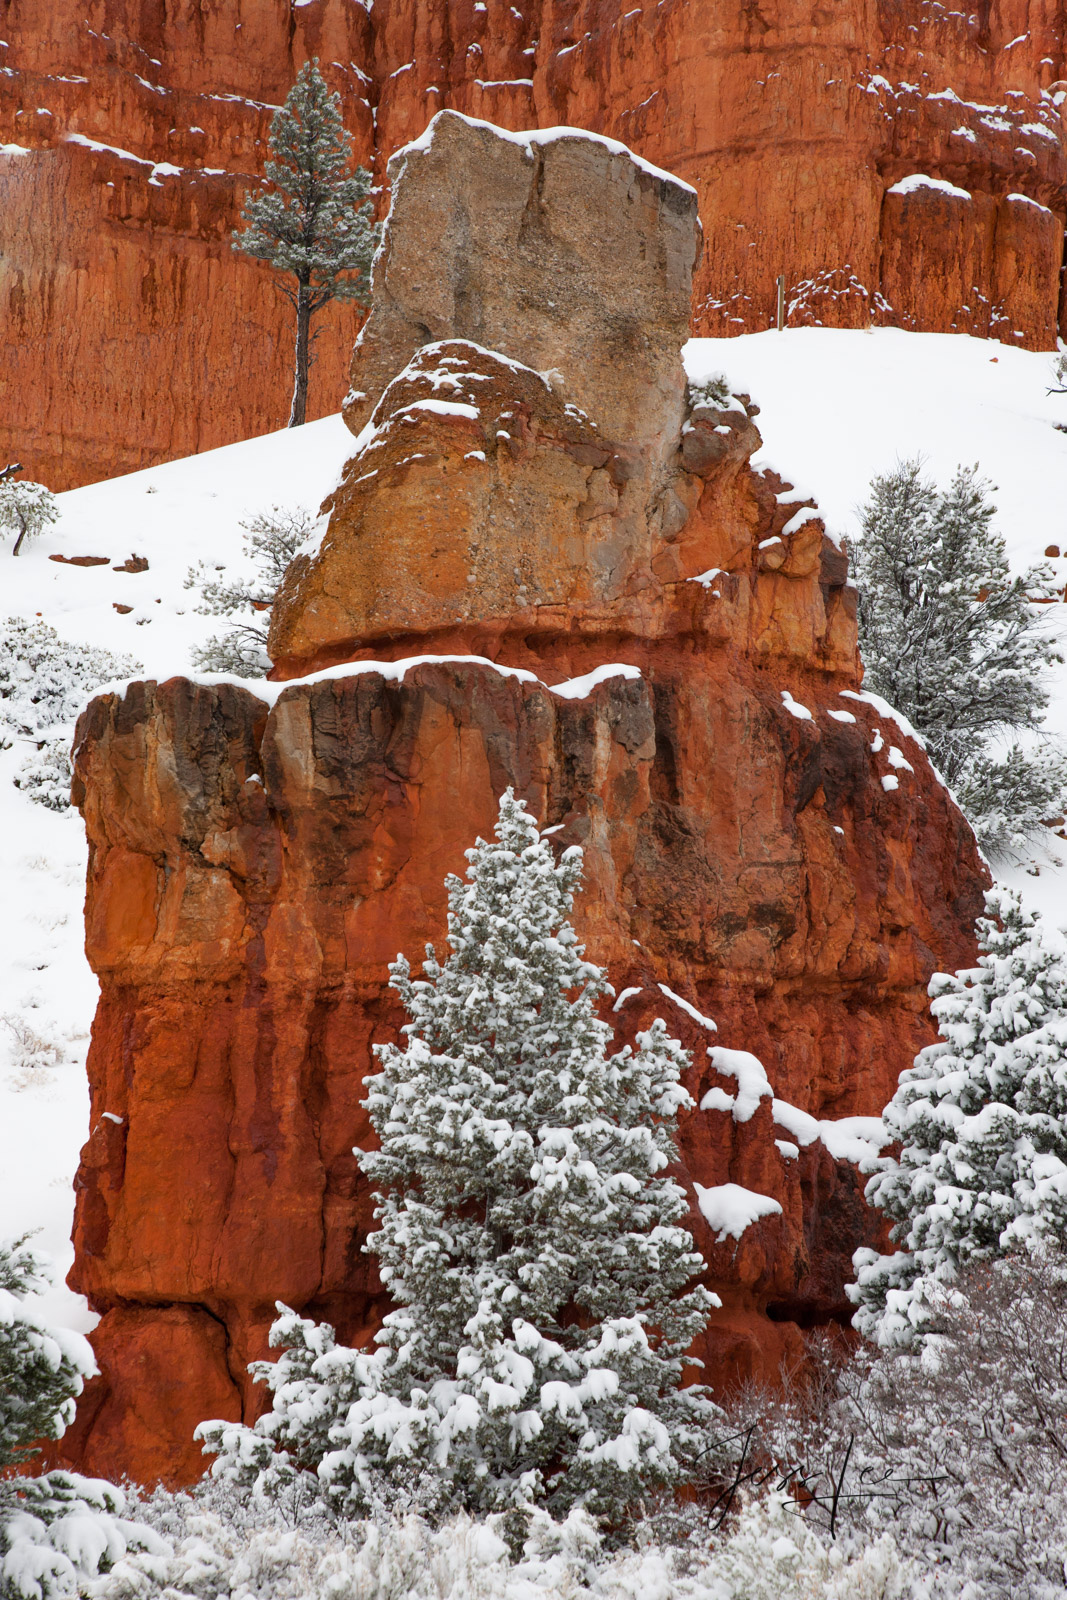 The red rocks of Bryce Canyon give a beautiful contrast to the fresh, white snow.